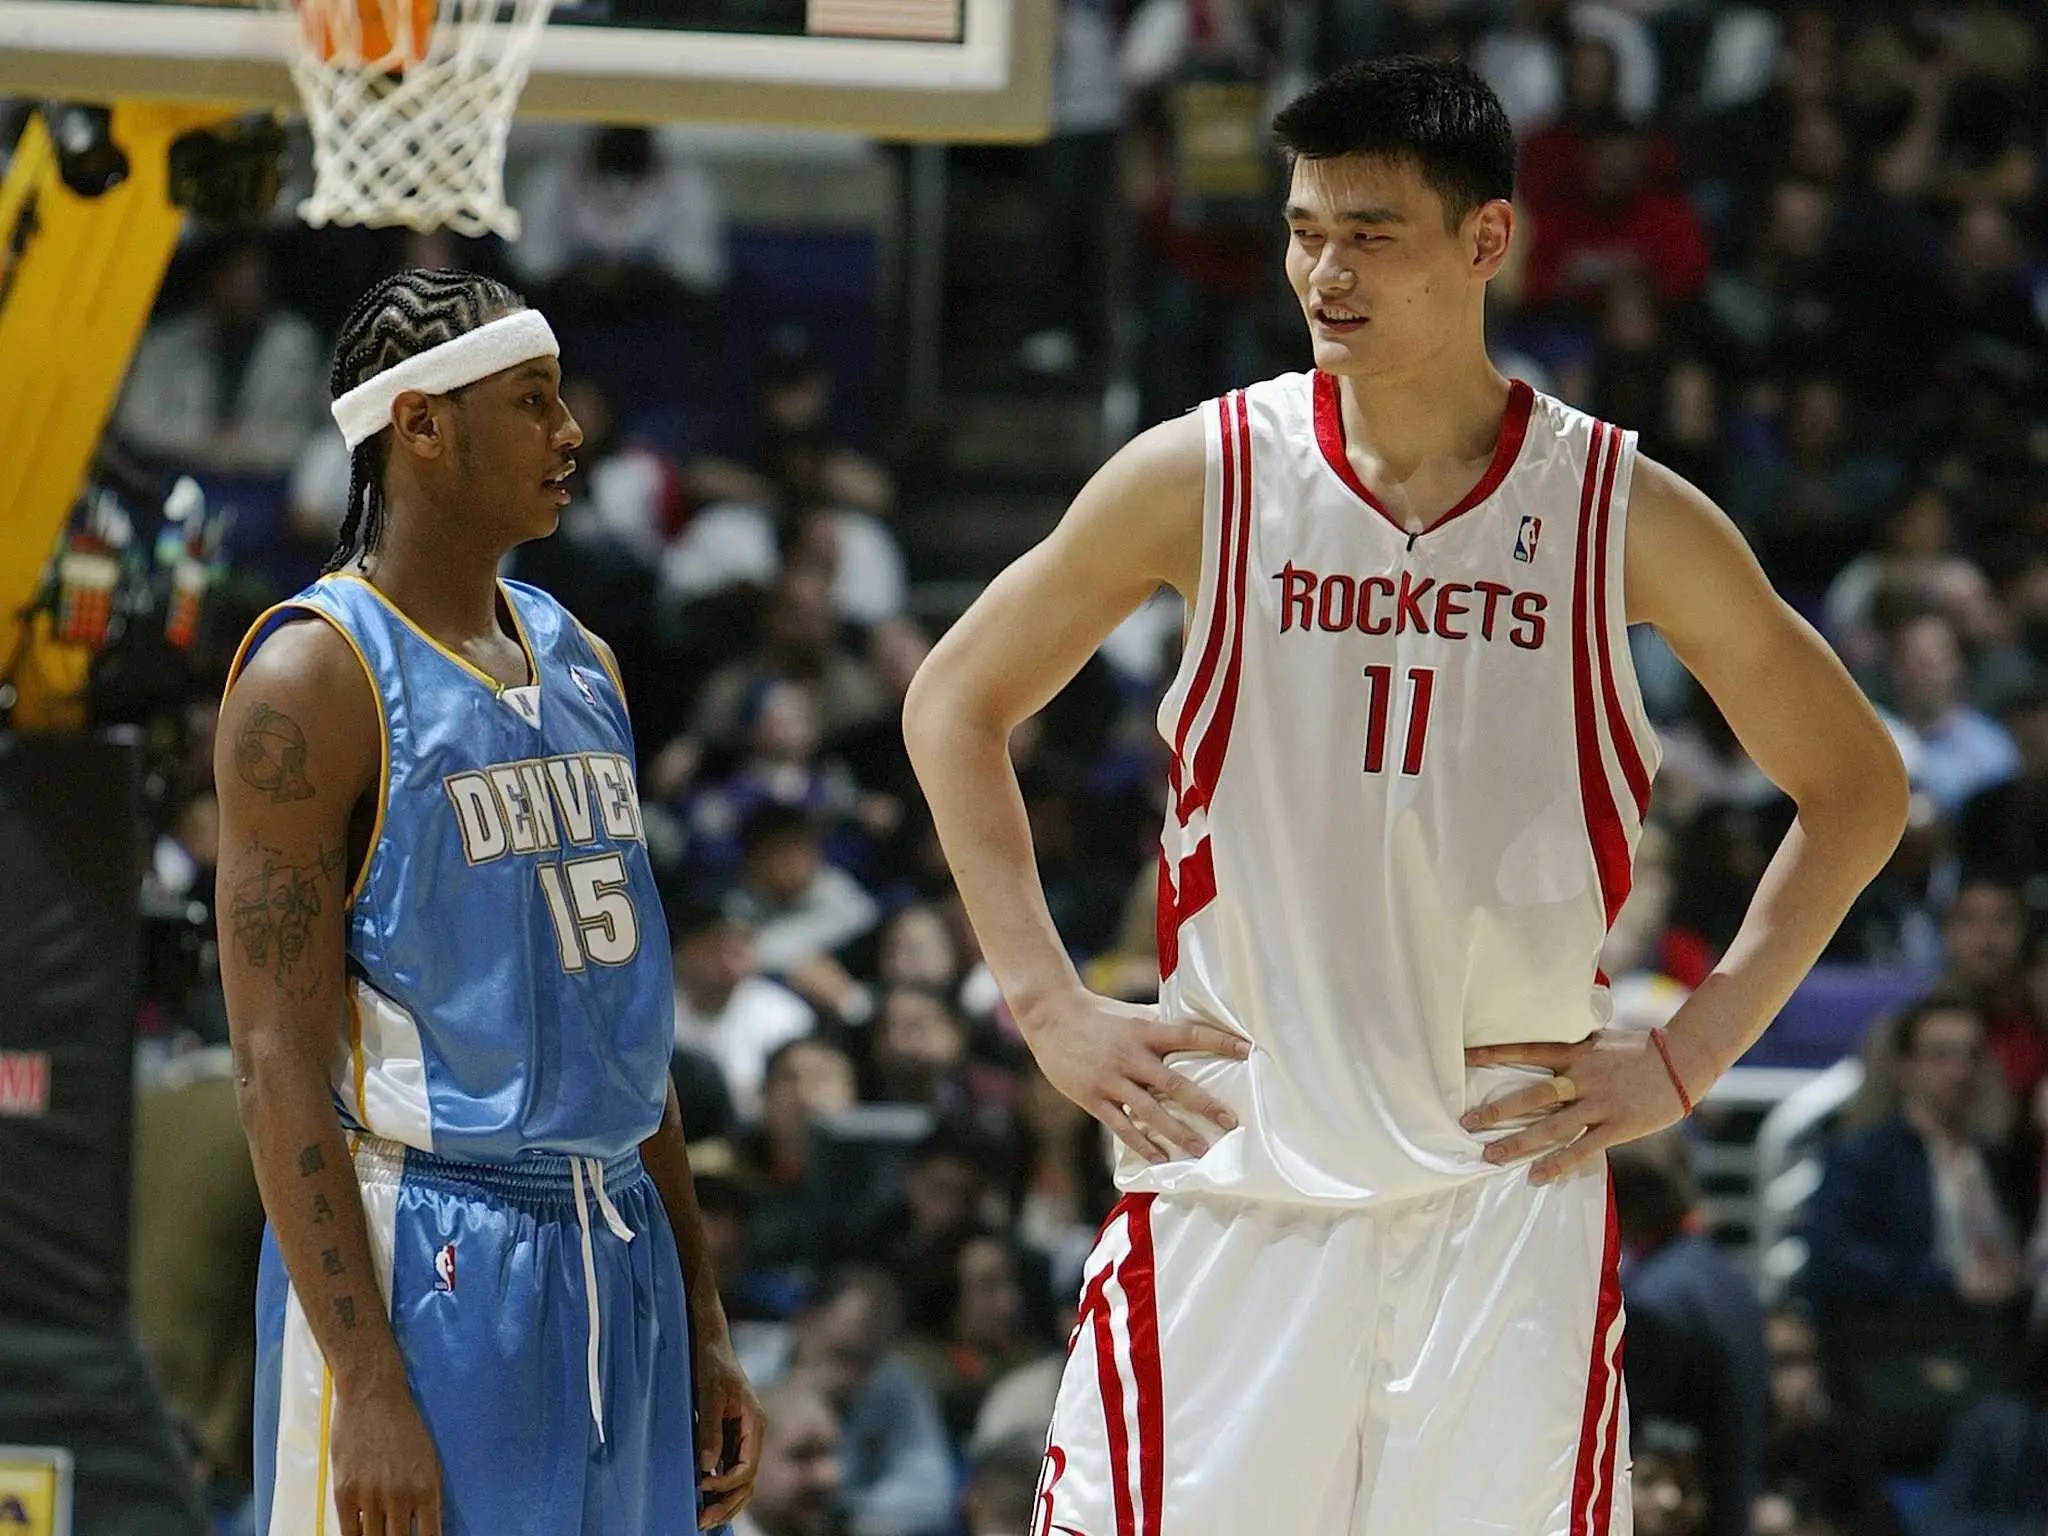 13 Photos Of Yao Ming Making Normal People Look Tiny | Business Insider